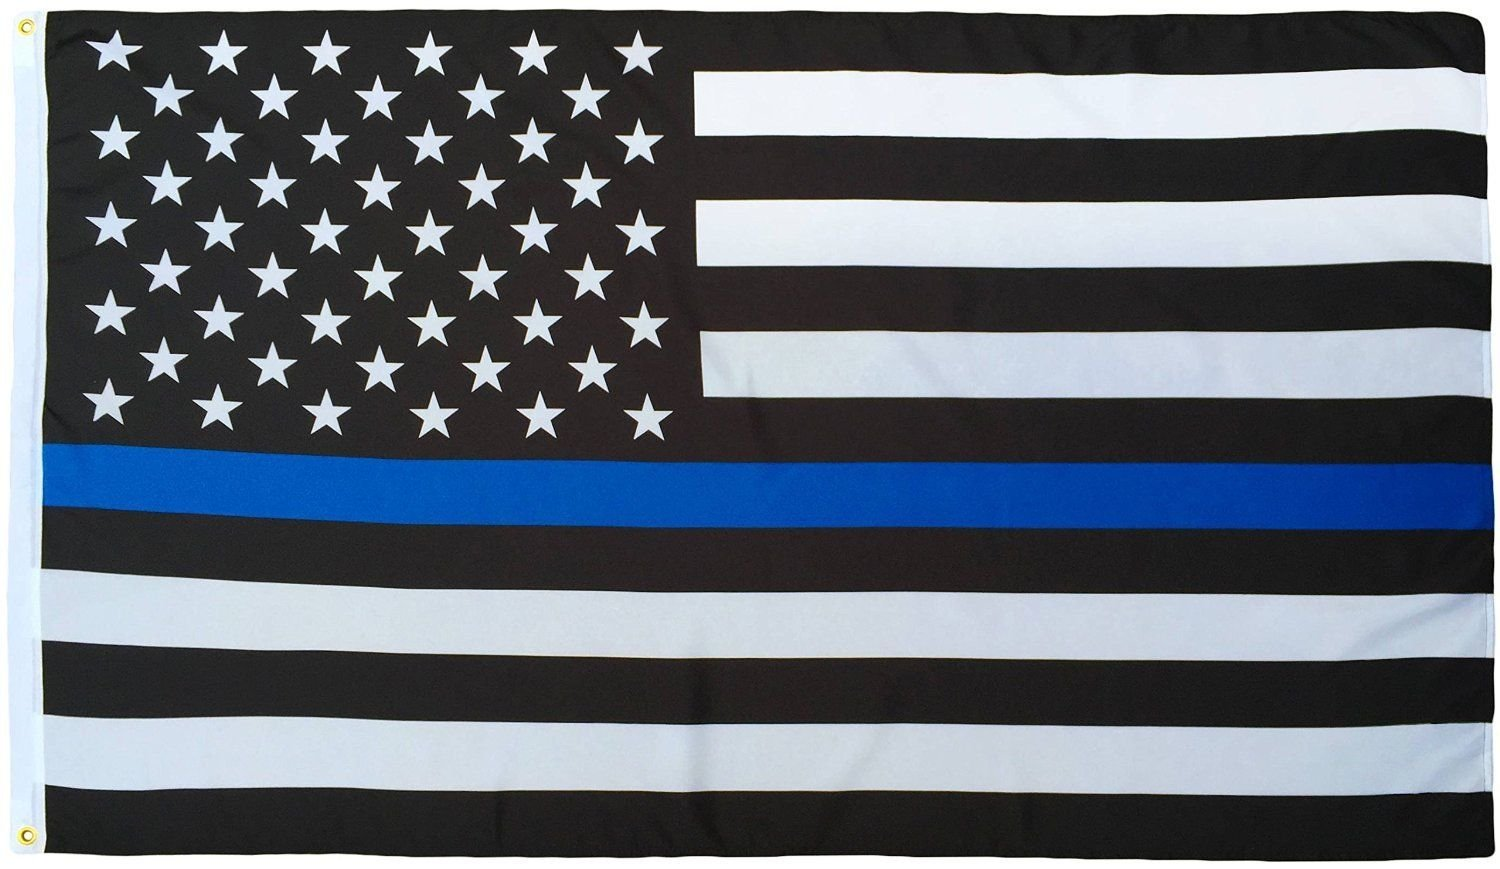 Blue Lives Matter Police USA American Thin Blue Line 3x5 Flag Rough Text Fabric